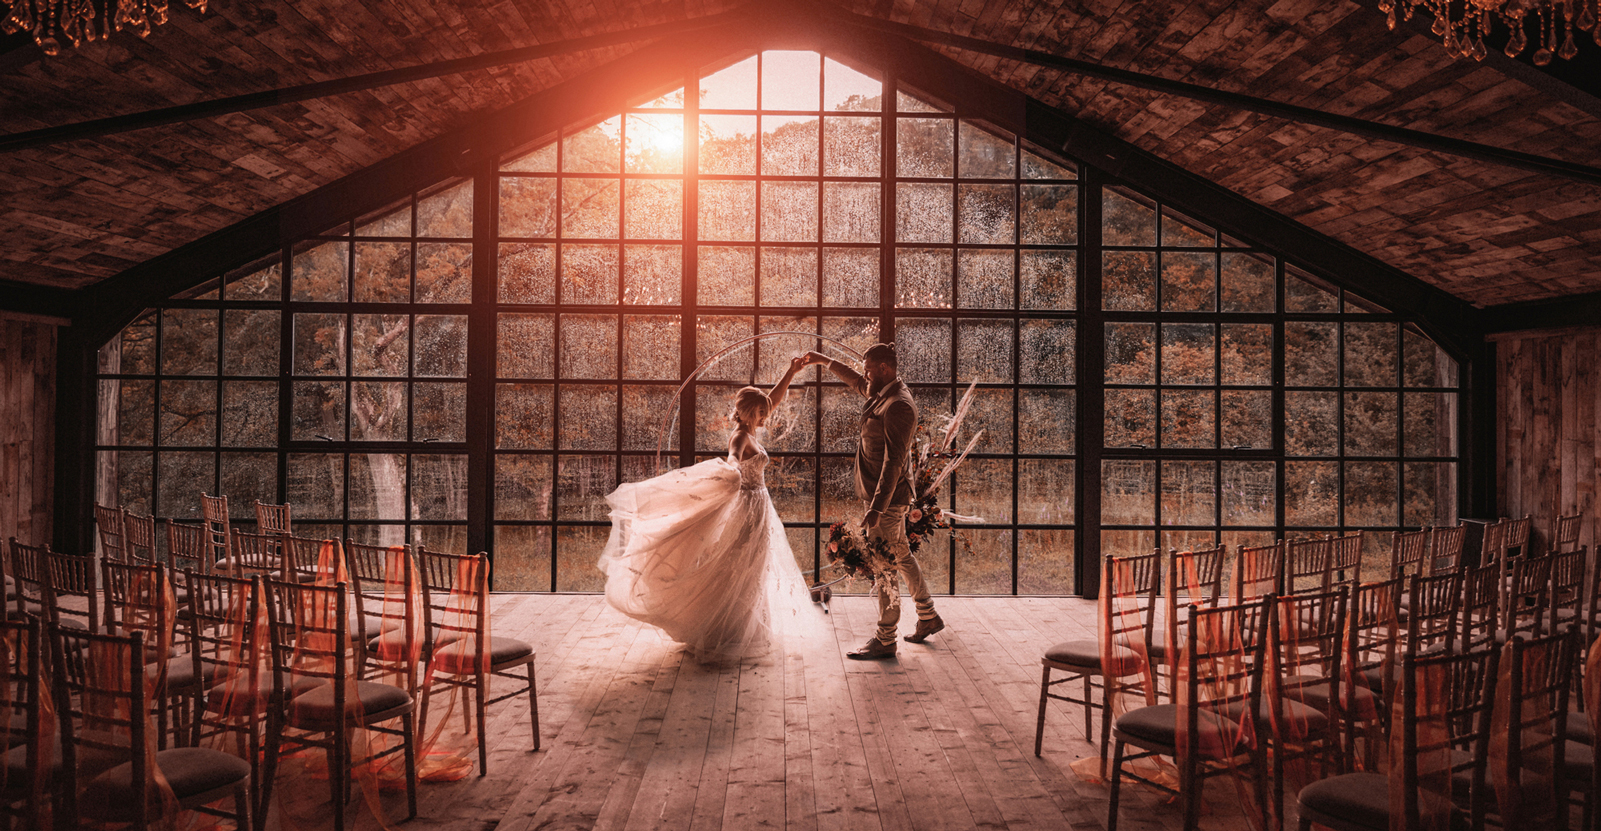 A wedding couple is dancing in front of a glazed wall.